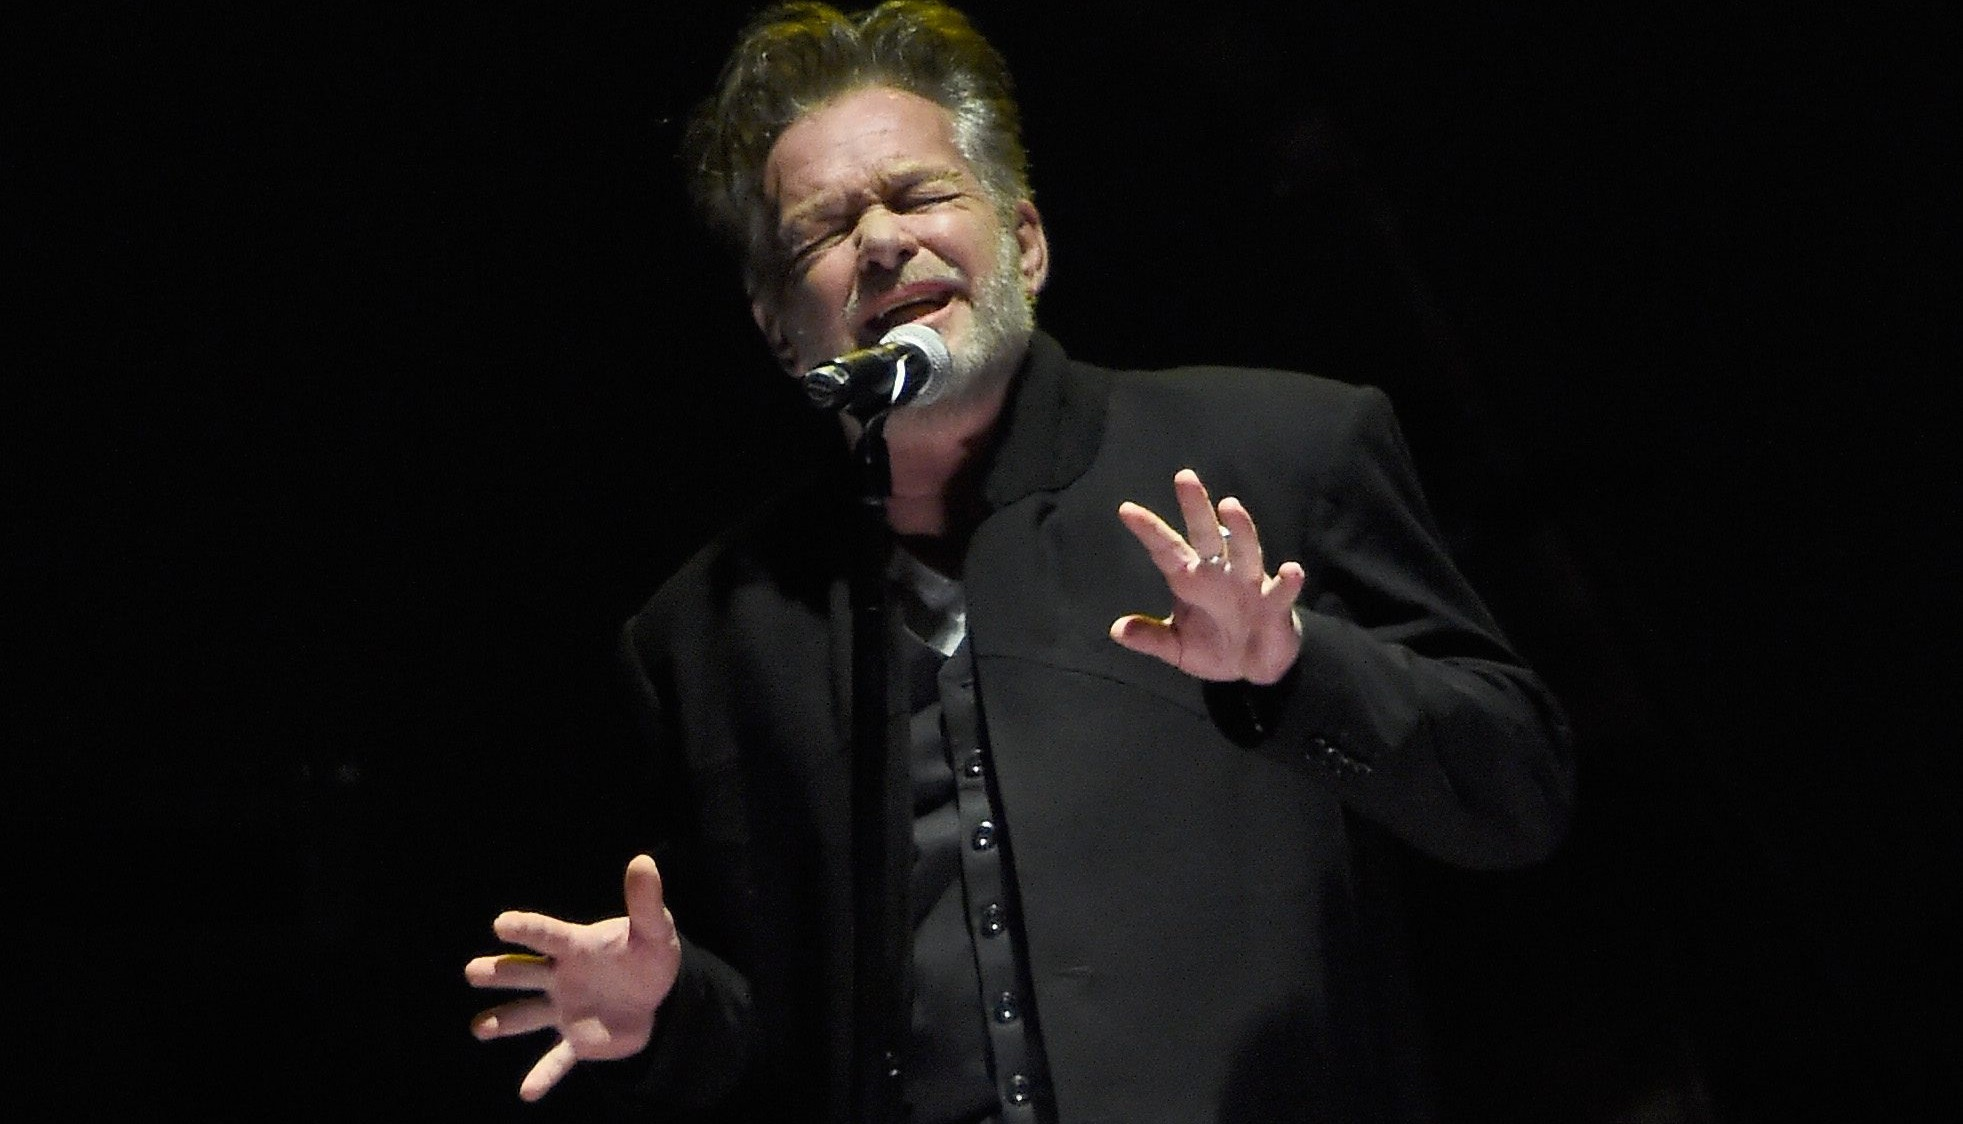 Singer John Mellencamp will bring his music to Shea's Performing Arts Center on Saturday.